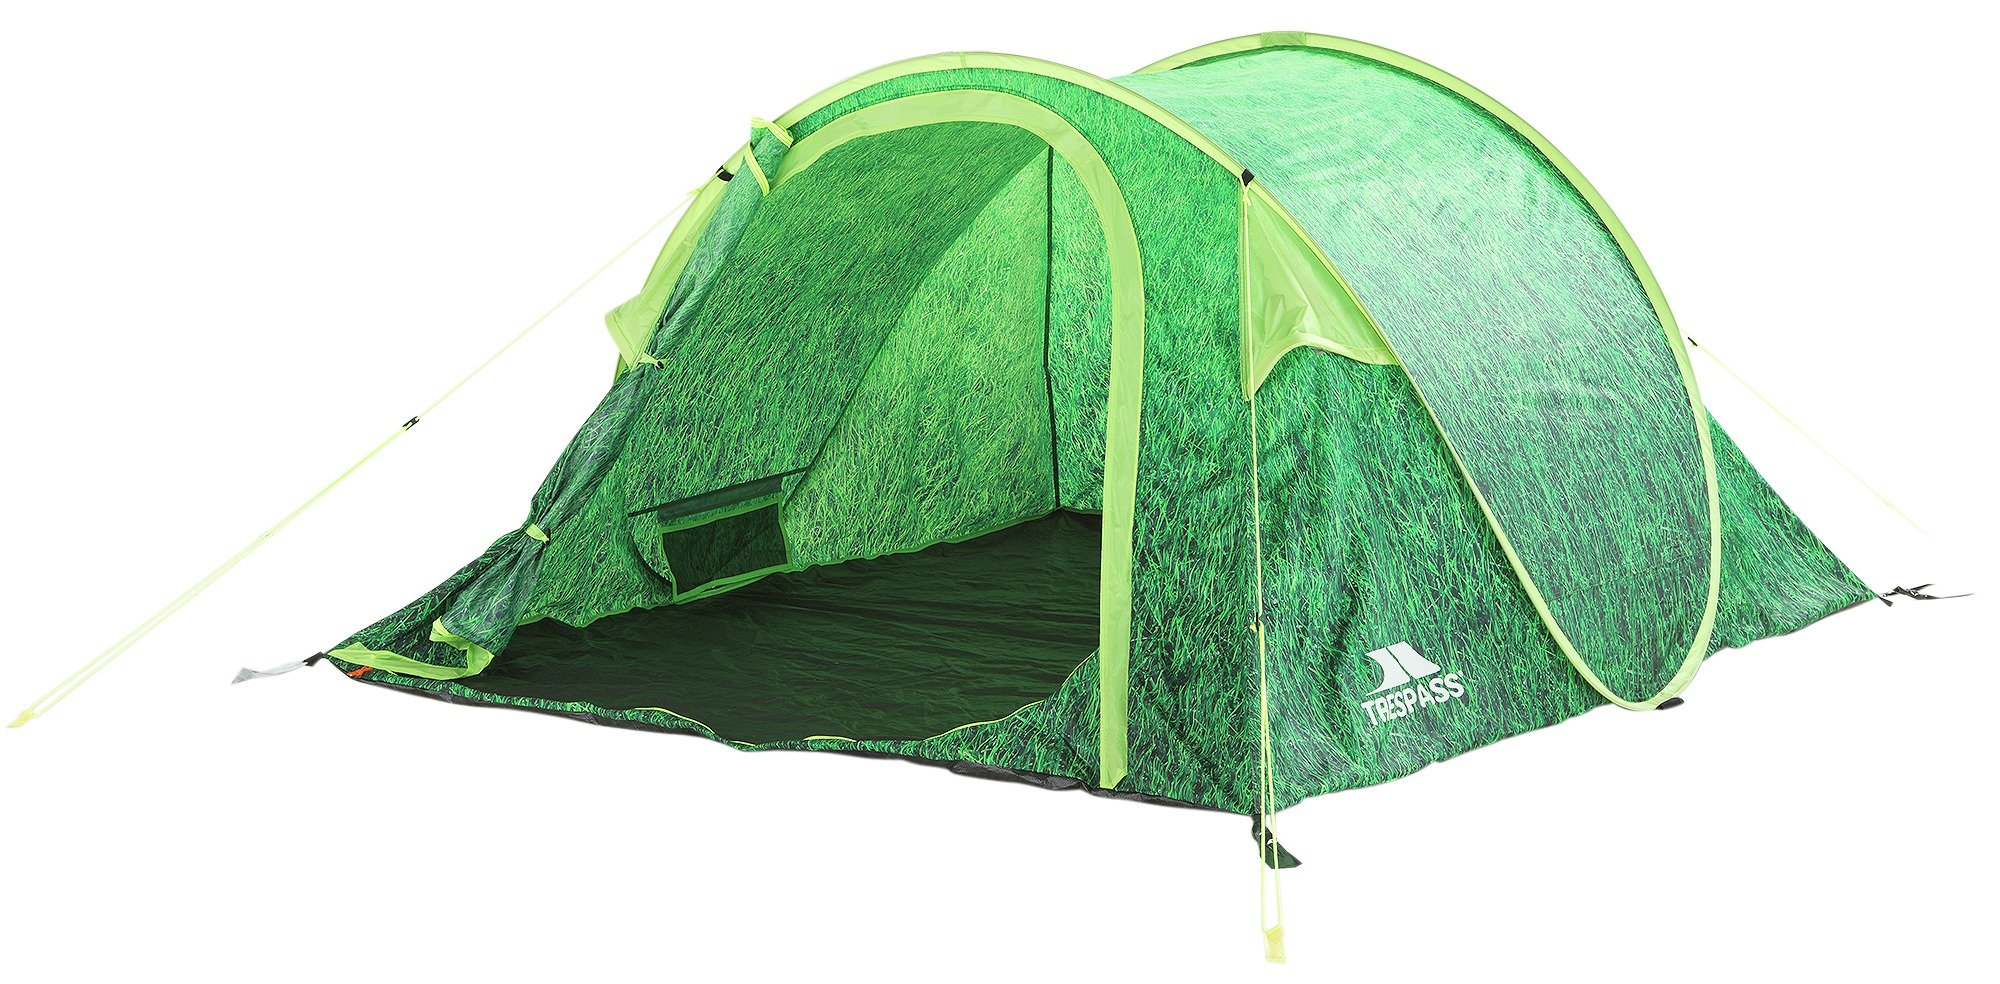 Trespass 4 Man 1 Room Festival Pop Up XL Tent